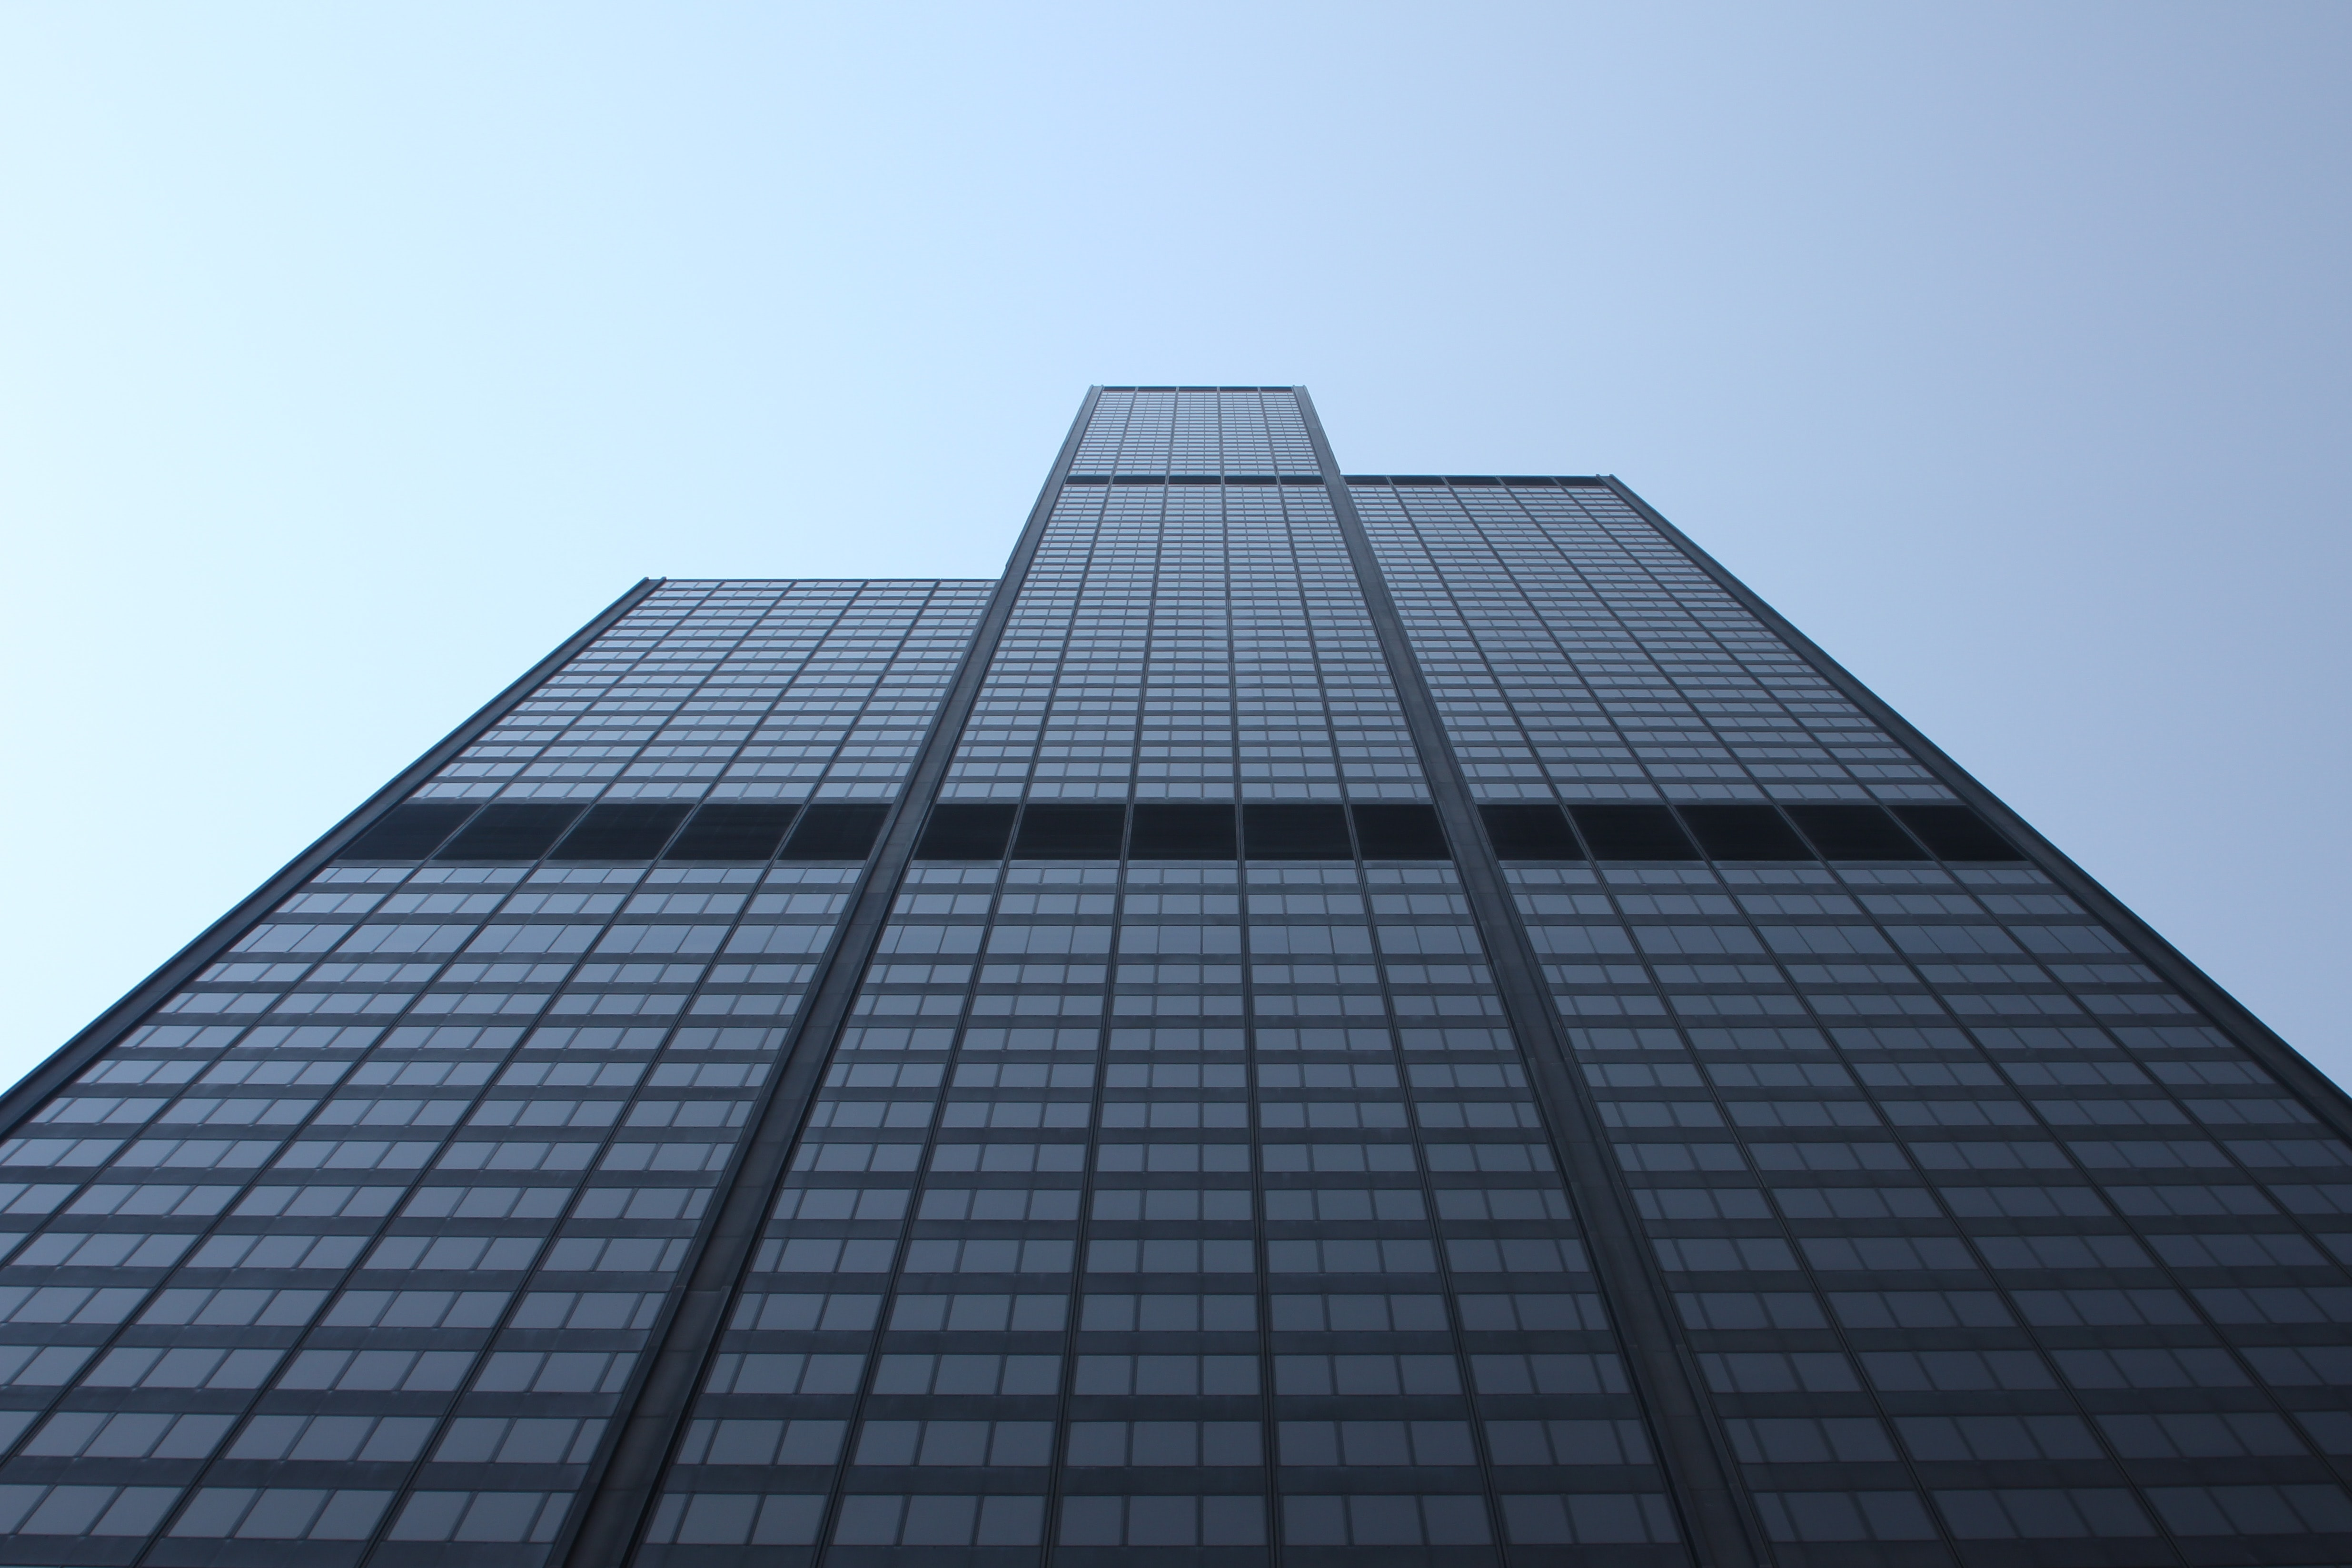 View of Willis Tower skyscraper facade and windows from below